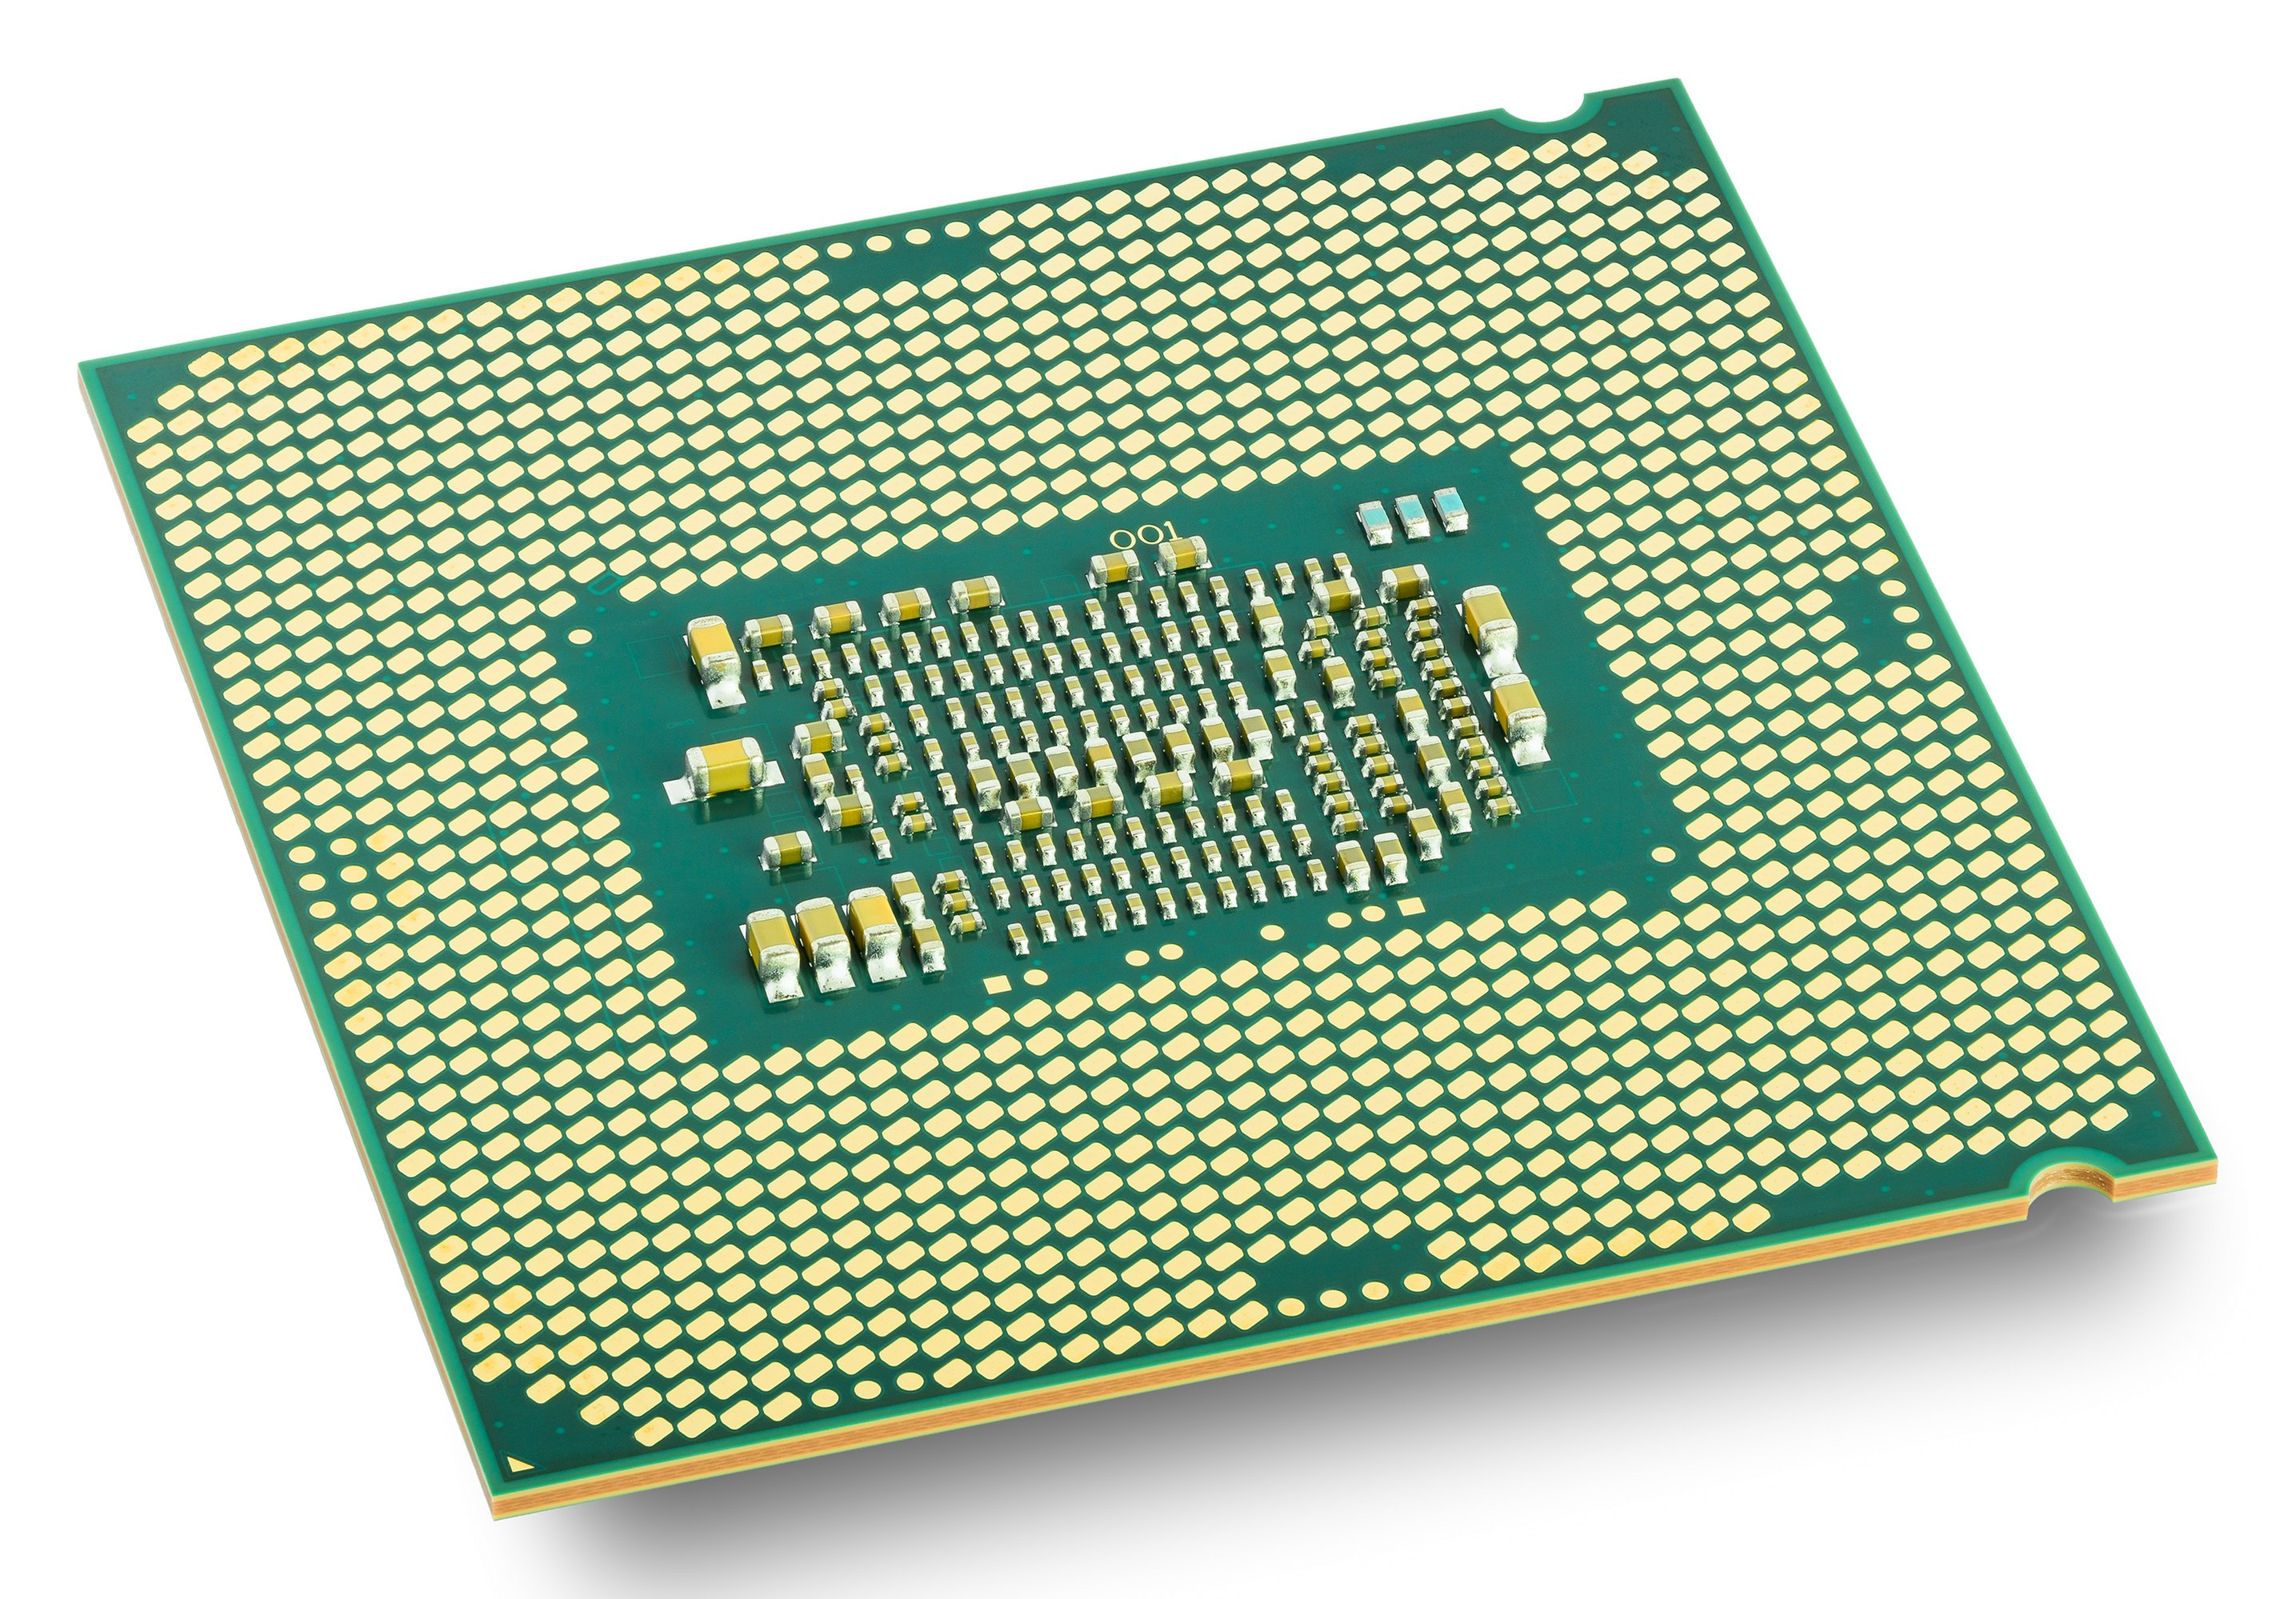 Skylake (microarchitecture) - The complete information and